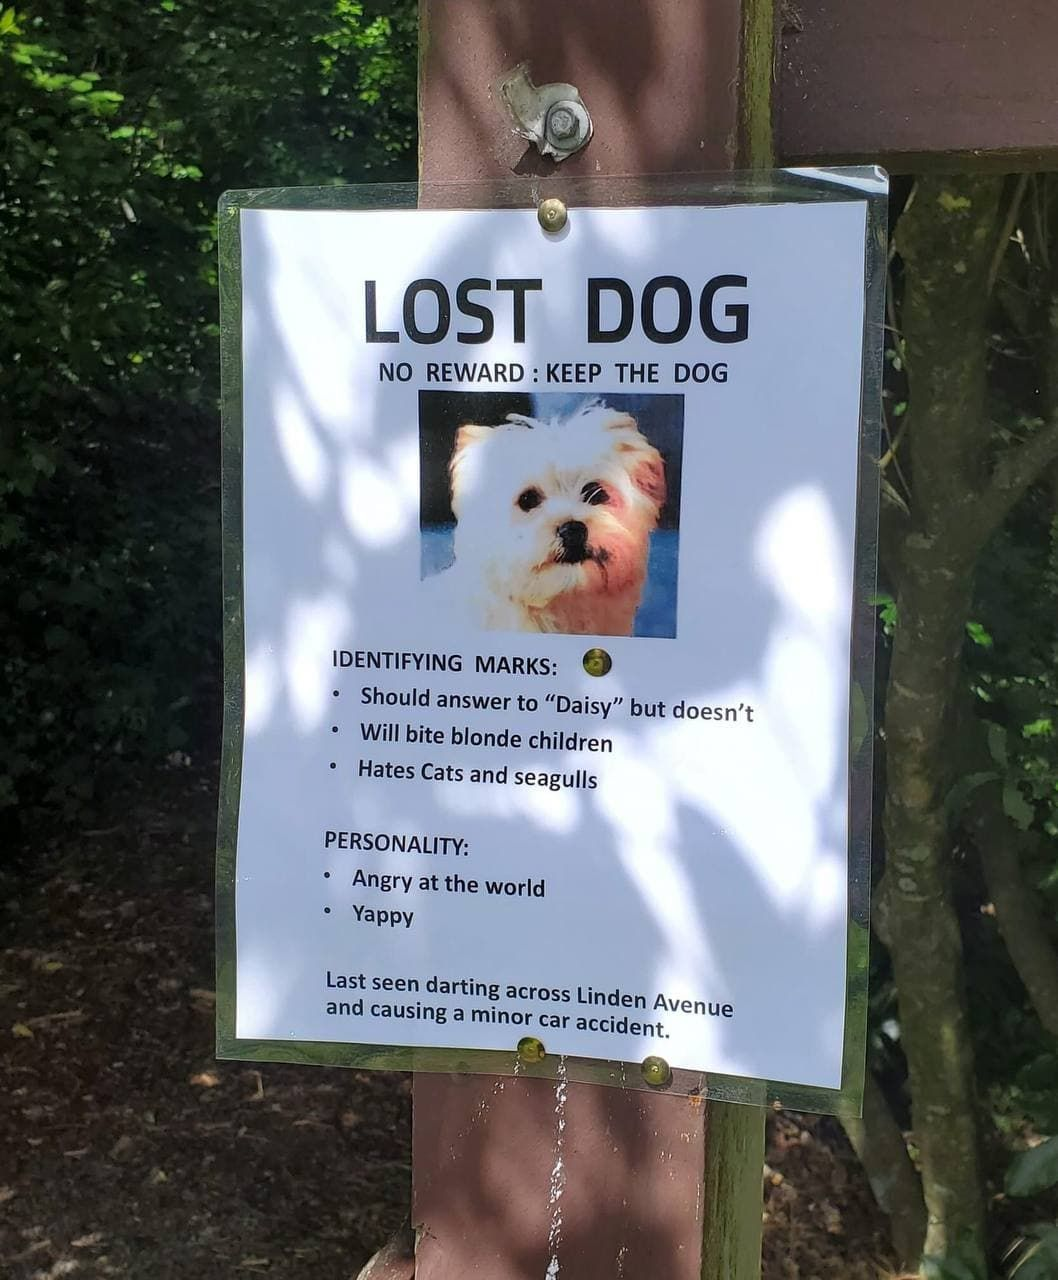 Friend of mine saw this posted up around her neighborhood